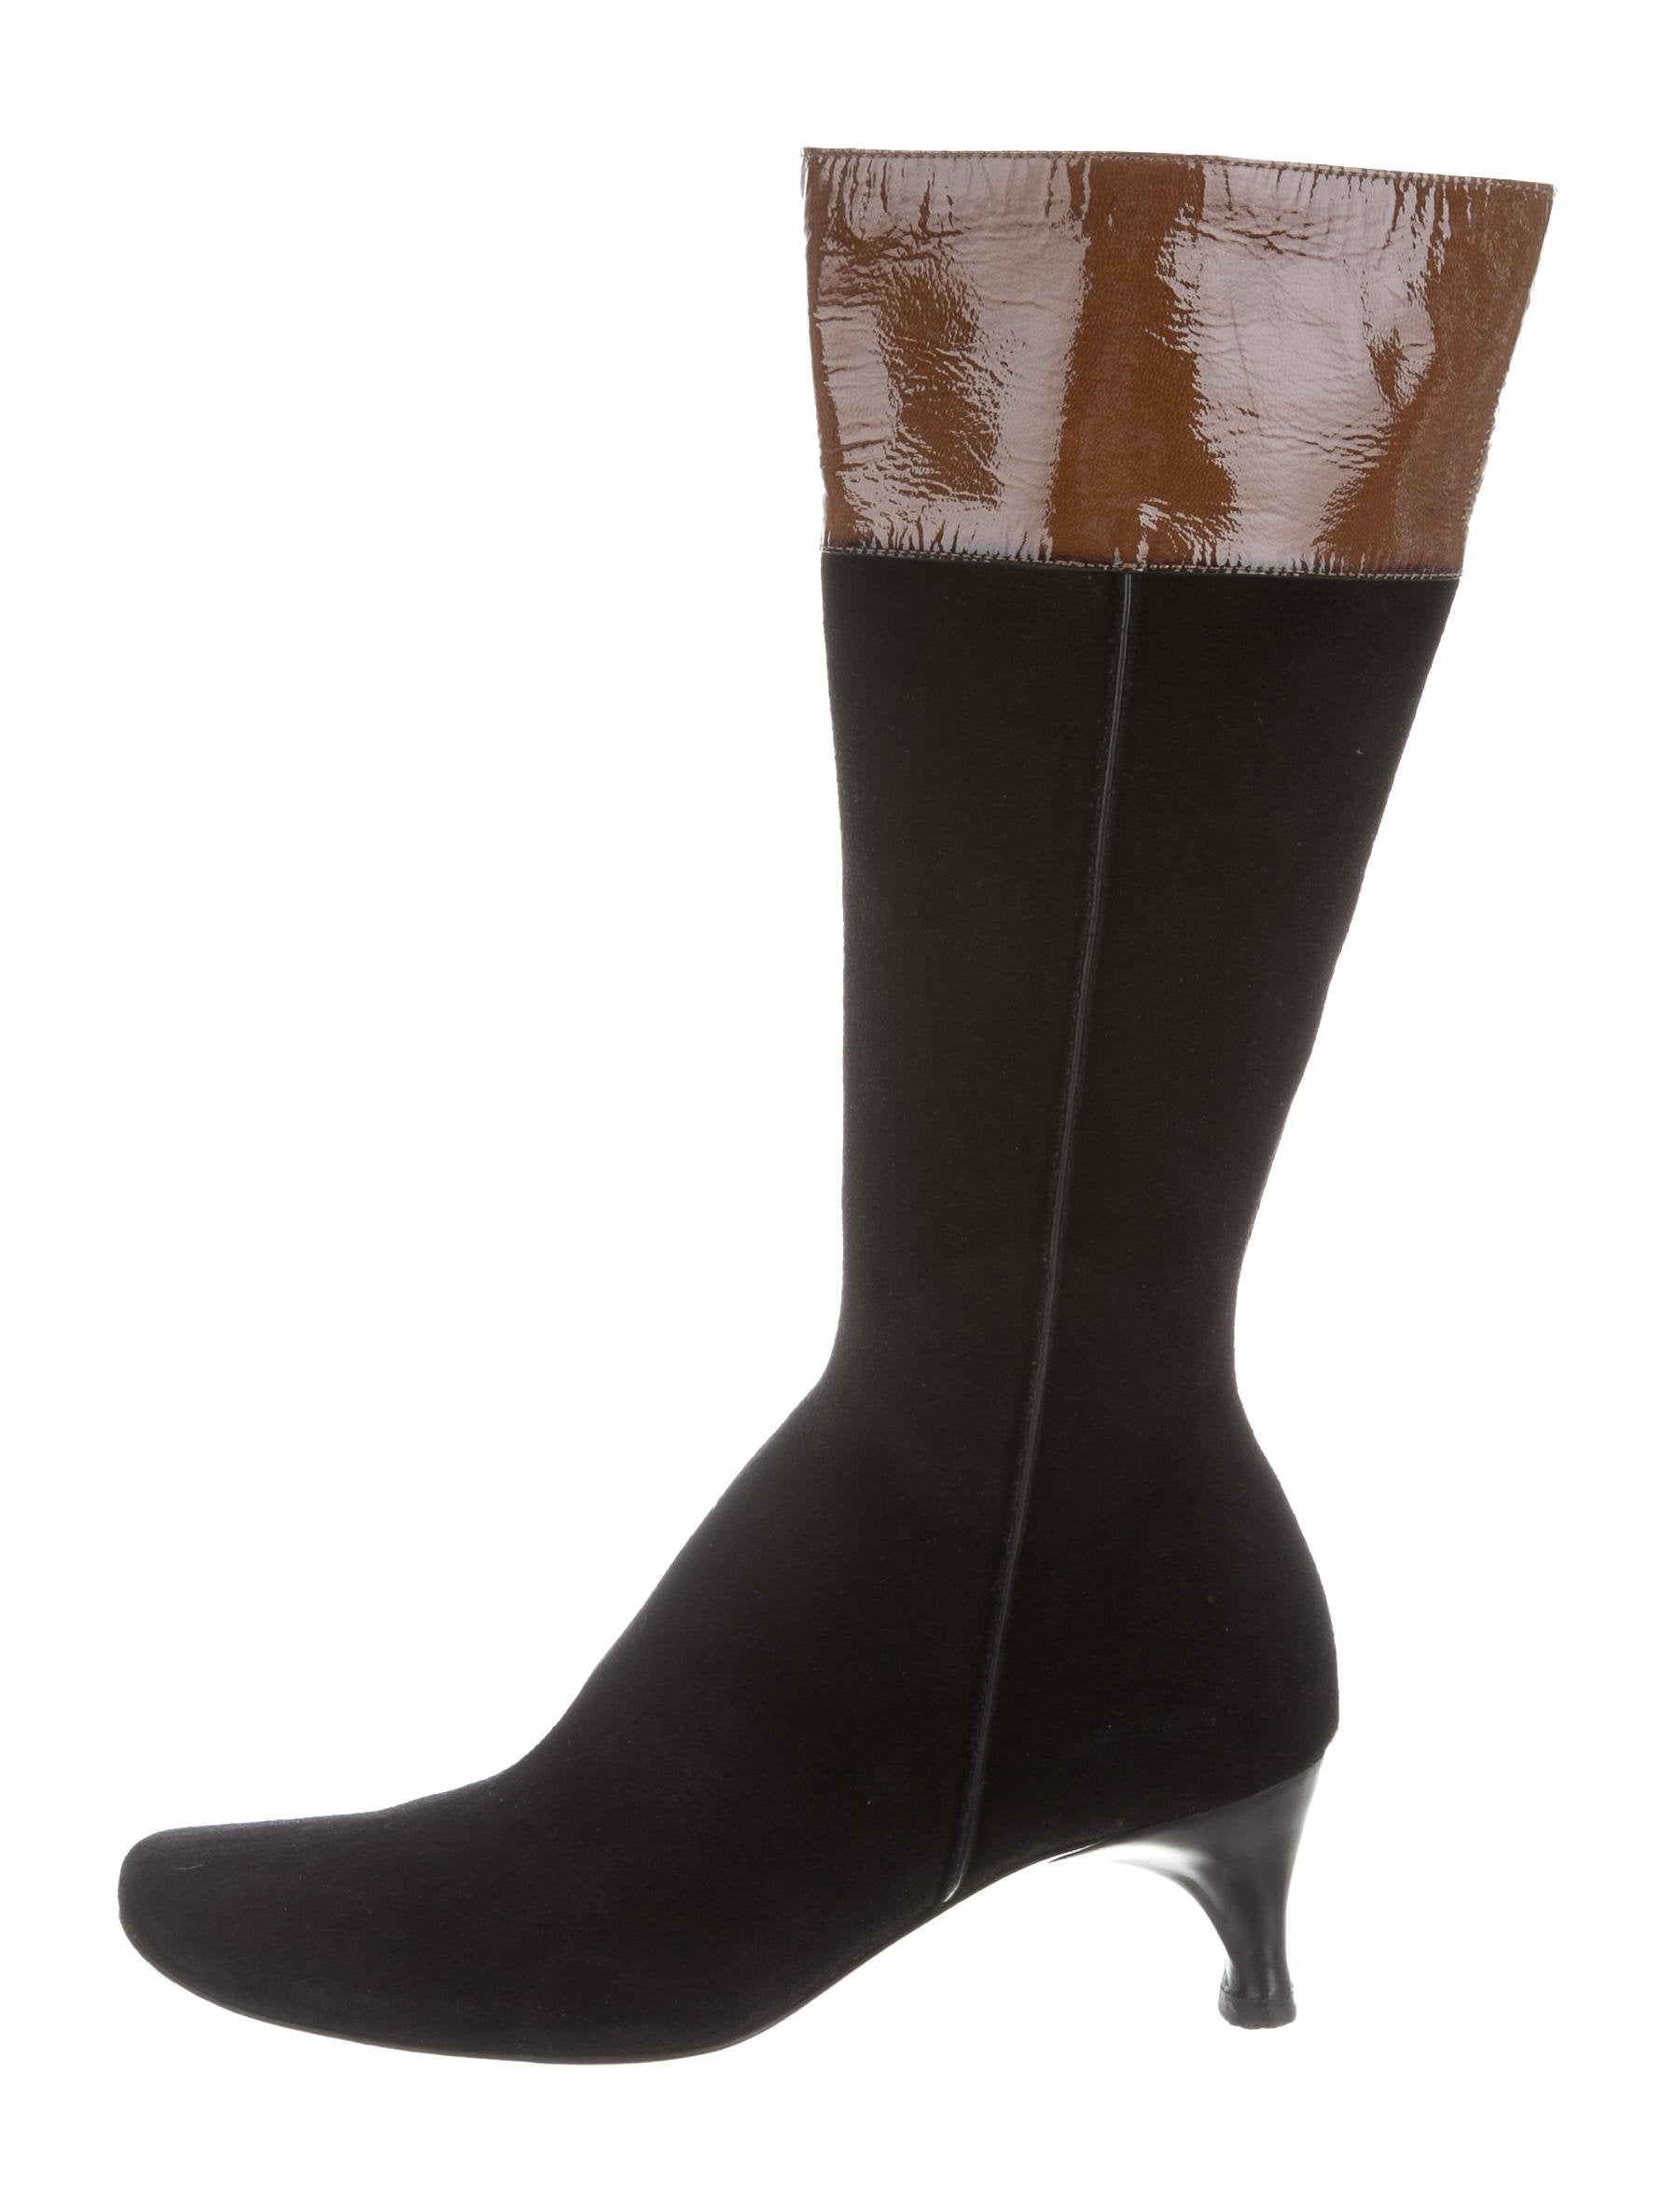 costume national suede toe boots shoes cot24199